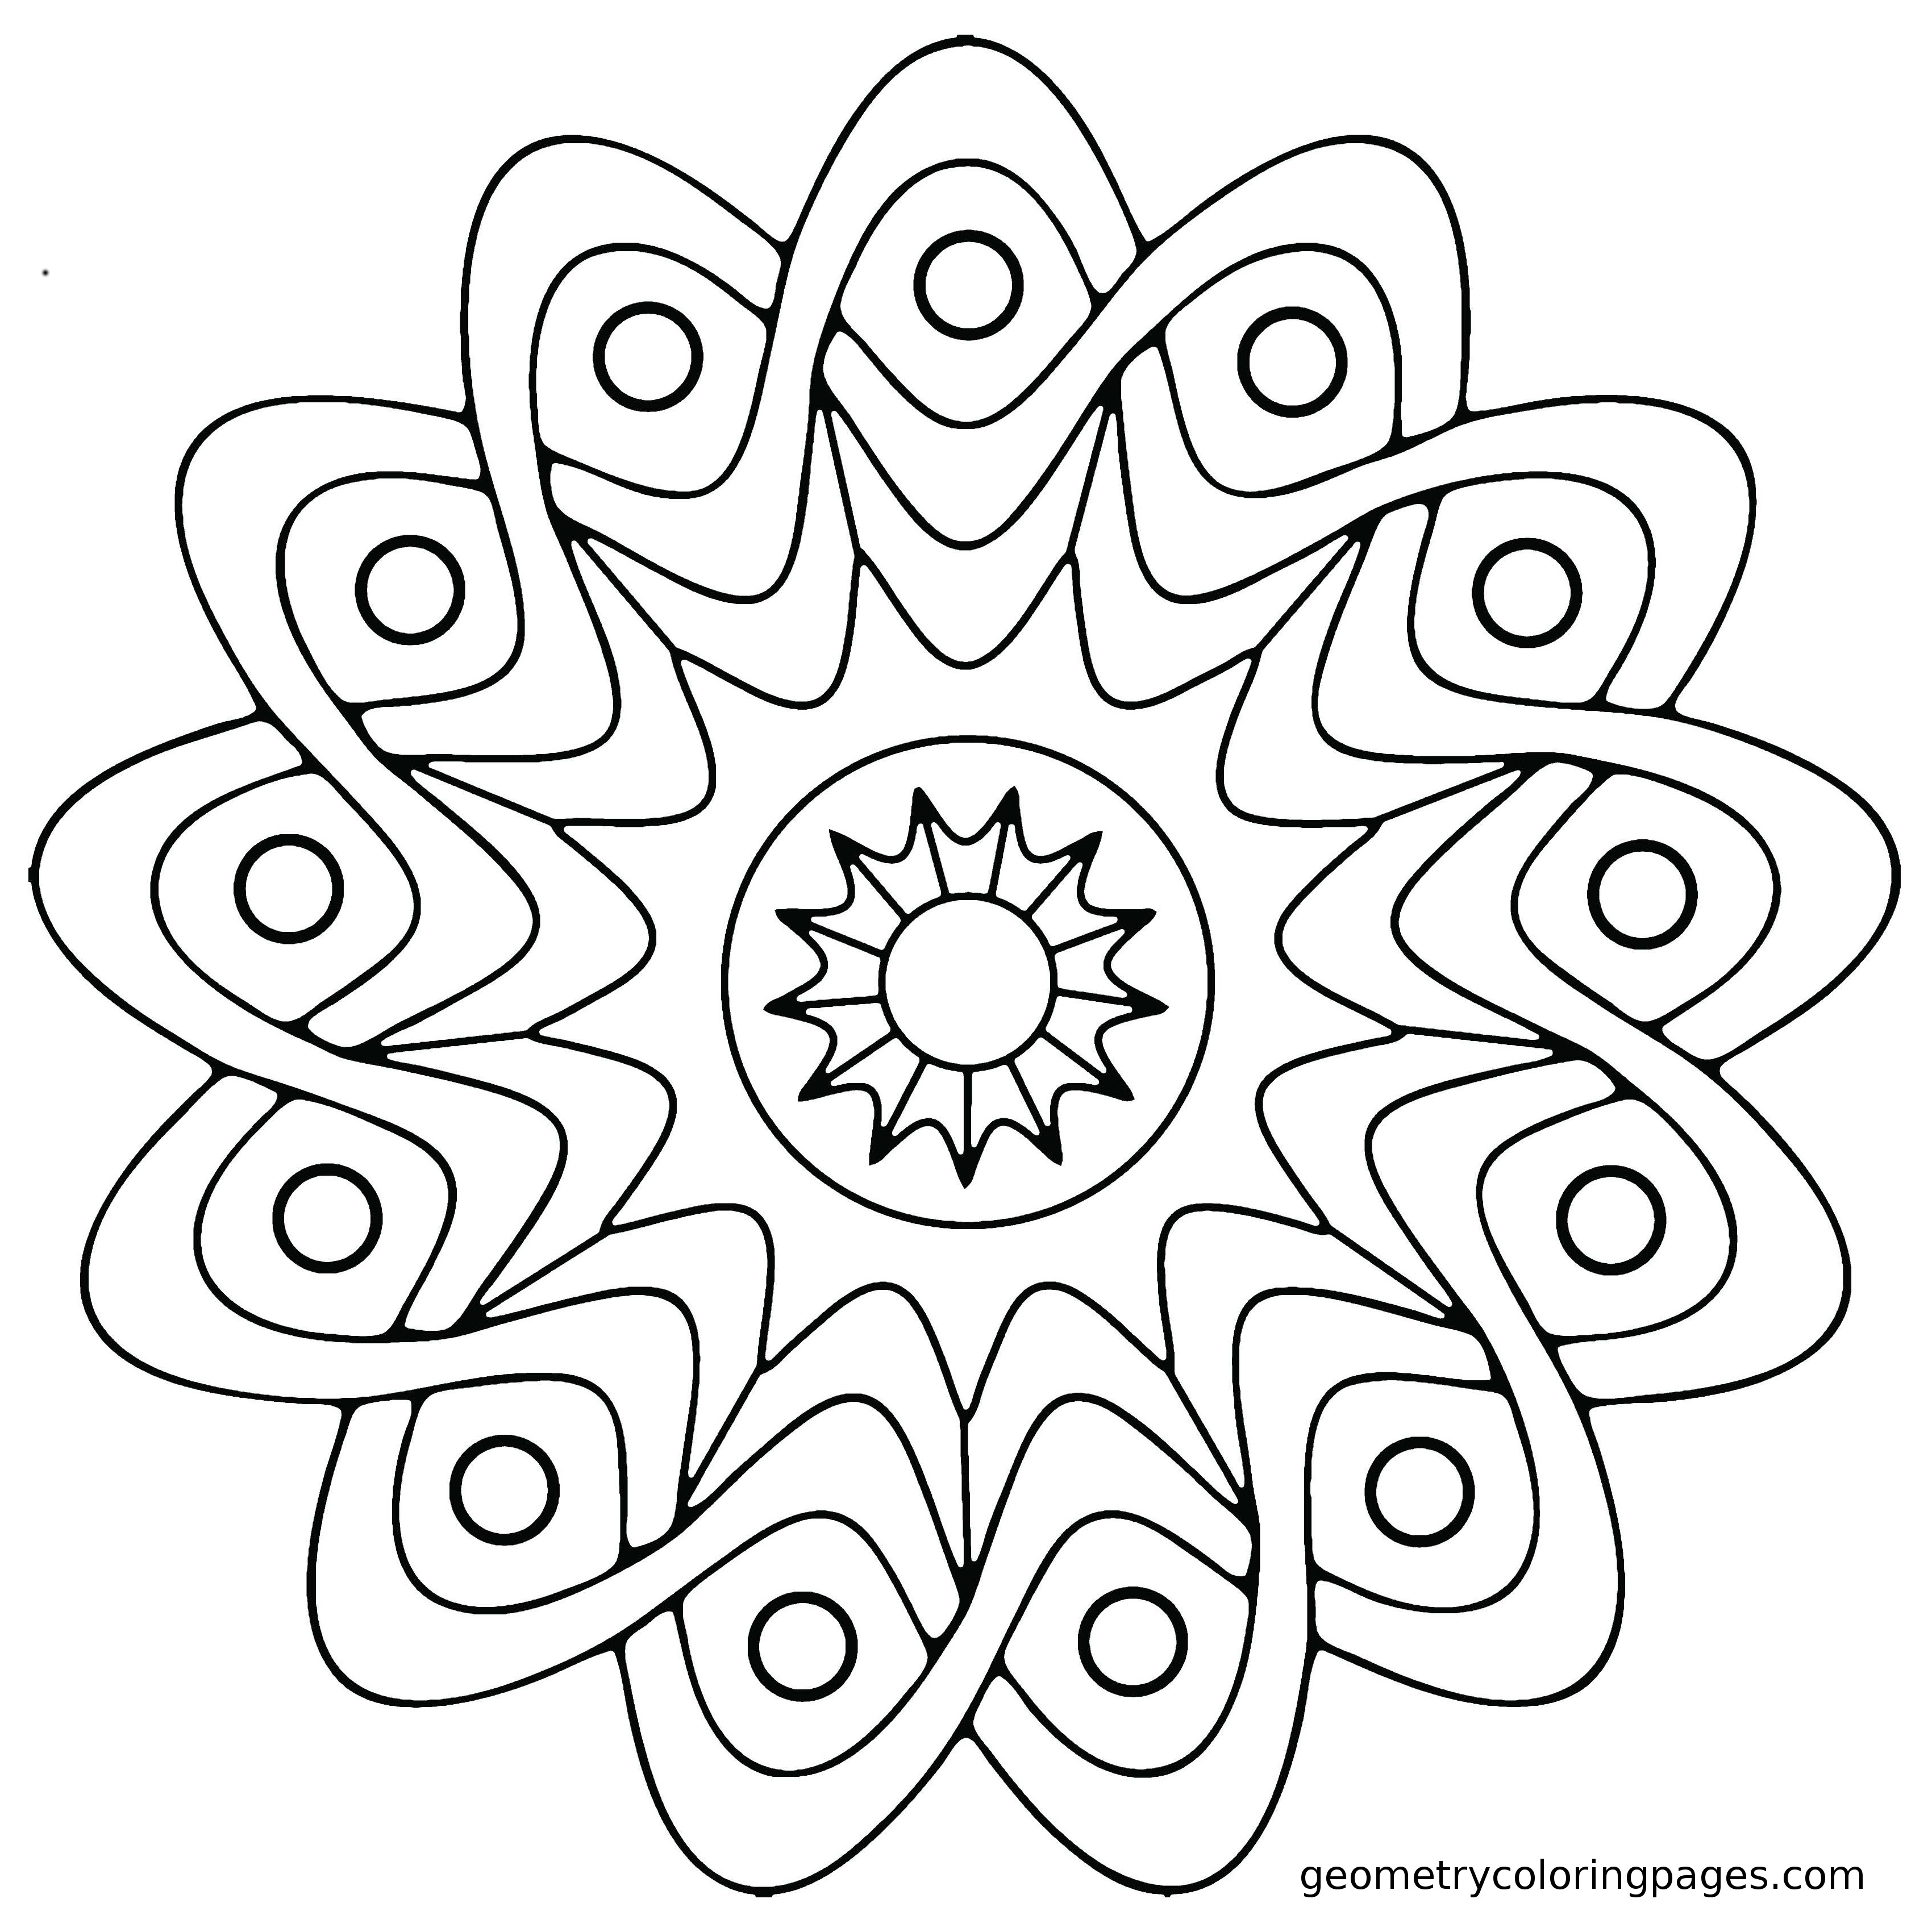 3400x3400 Simple Mandala Coloring Pages Within